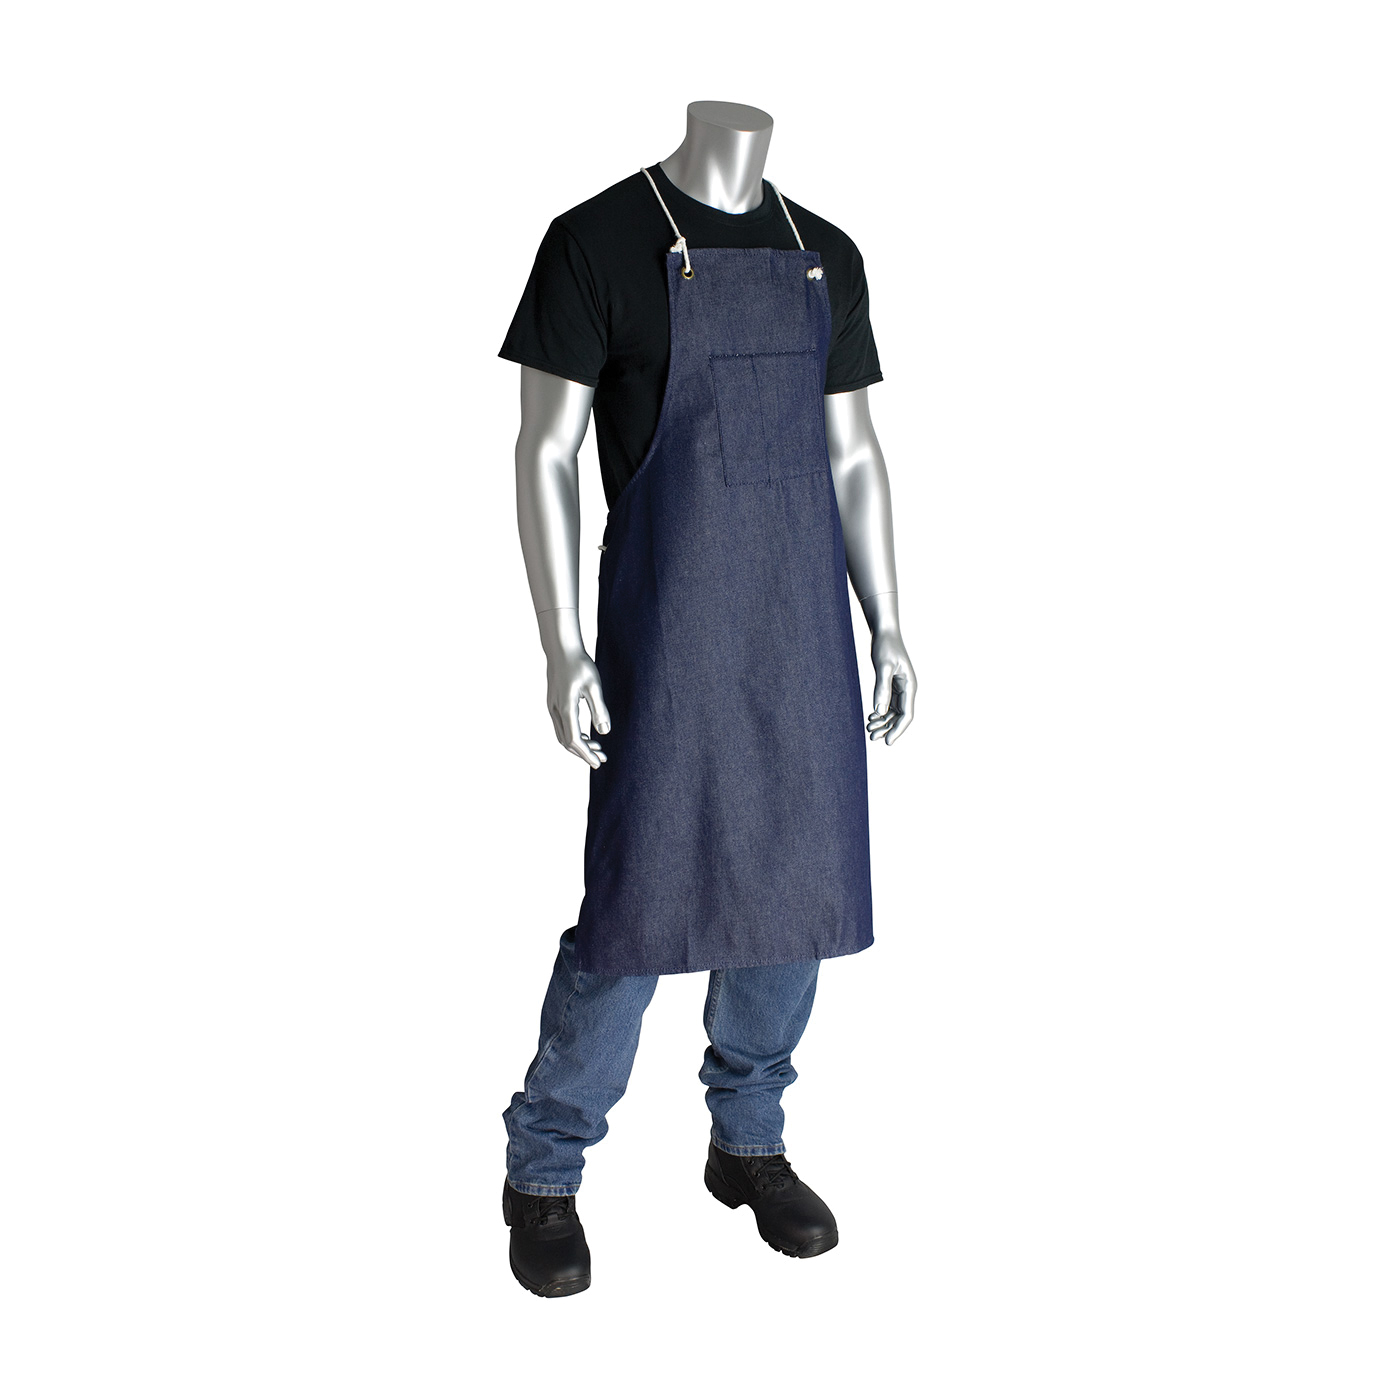 PIP® 200-01002 Embossed Single Use Bib Apron, Polyethylene, 46 in L x 28 in W, Resists: Chemical, Fats, Oil and Grease